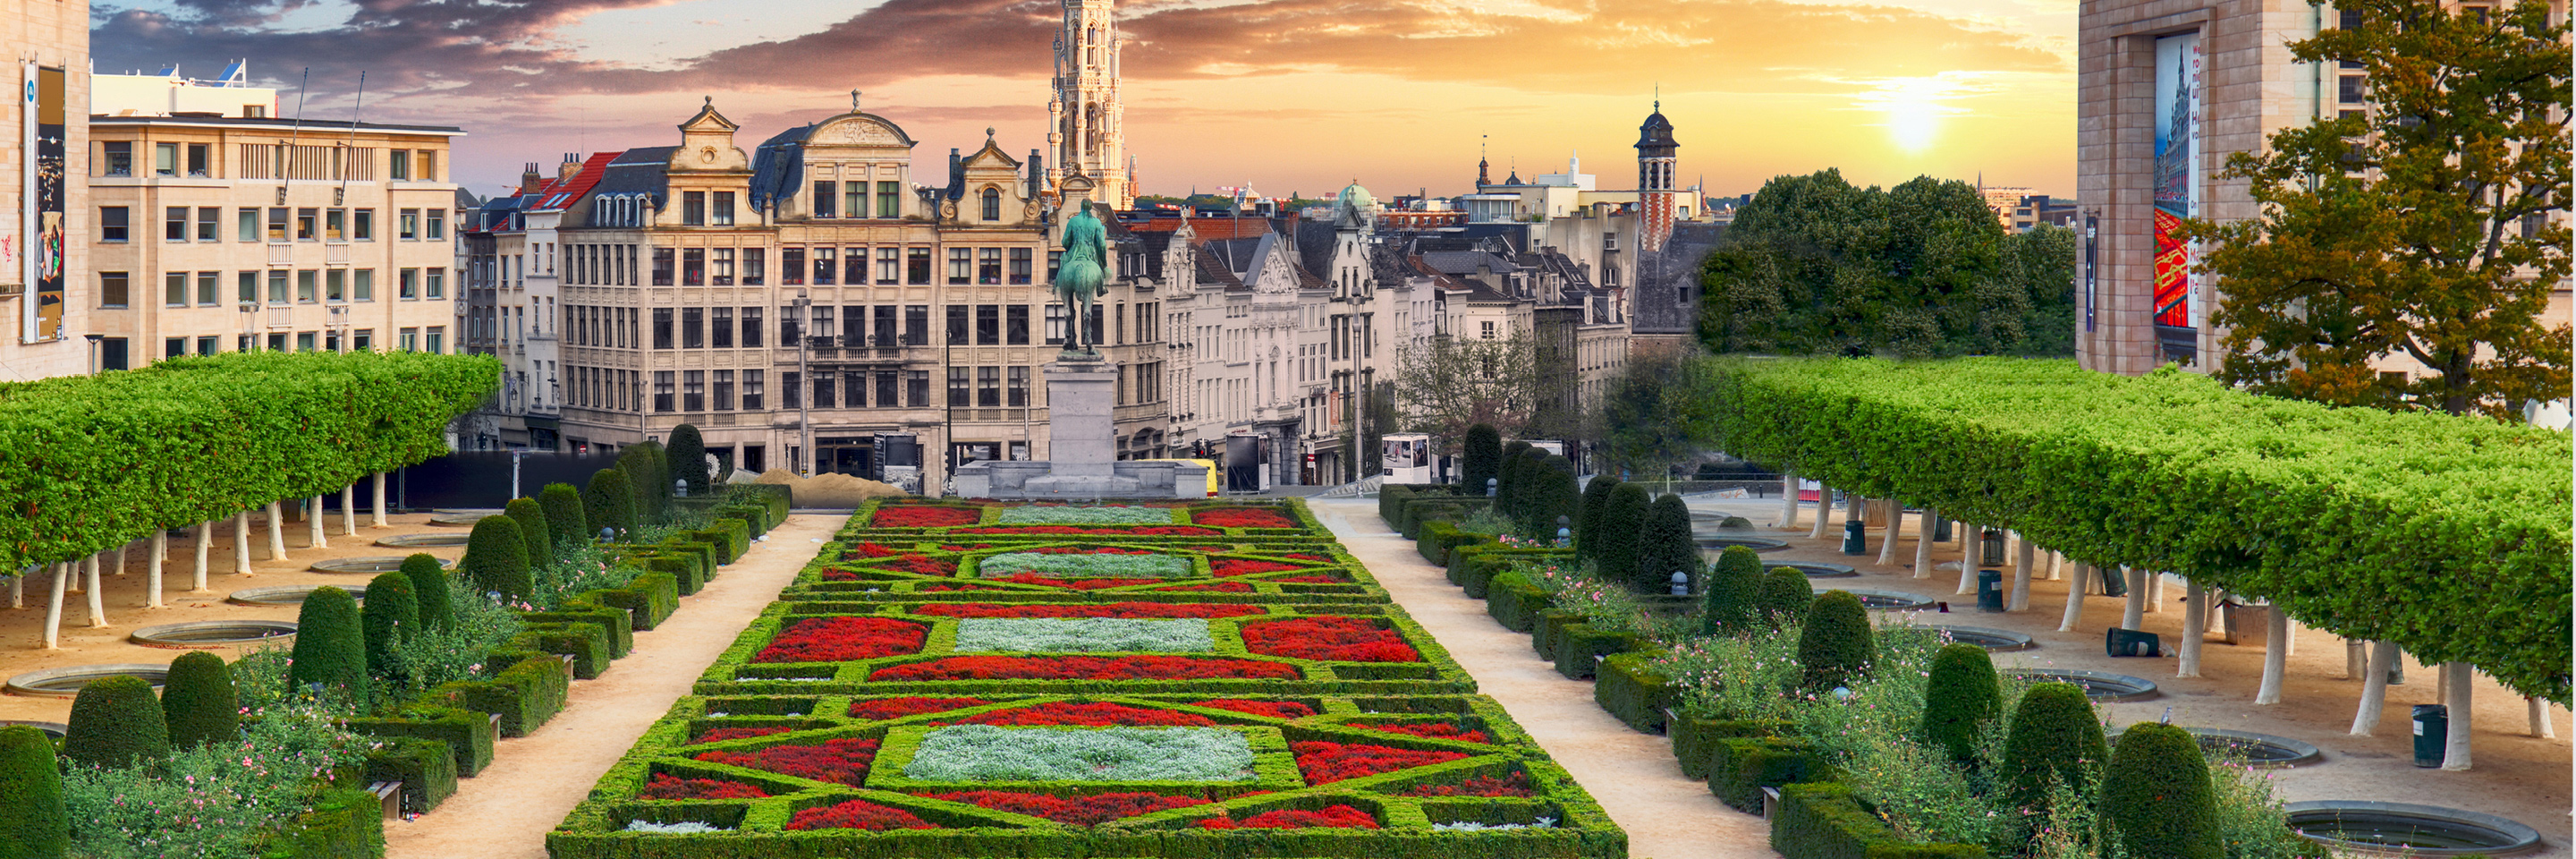 Tulip Time in Holland & Belgium for Garden & Nature Lovers